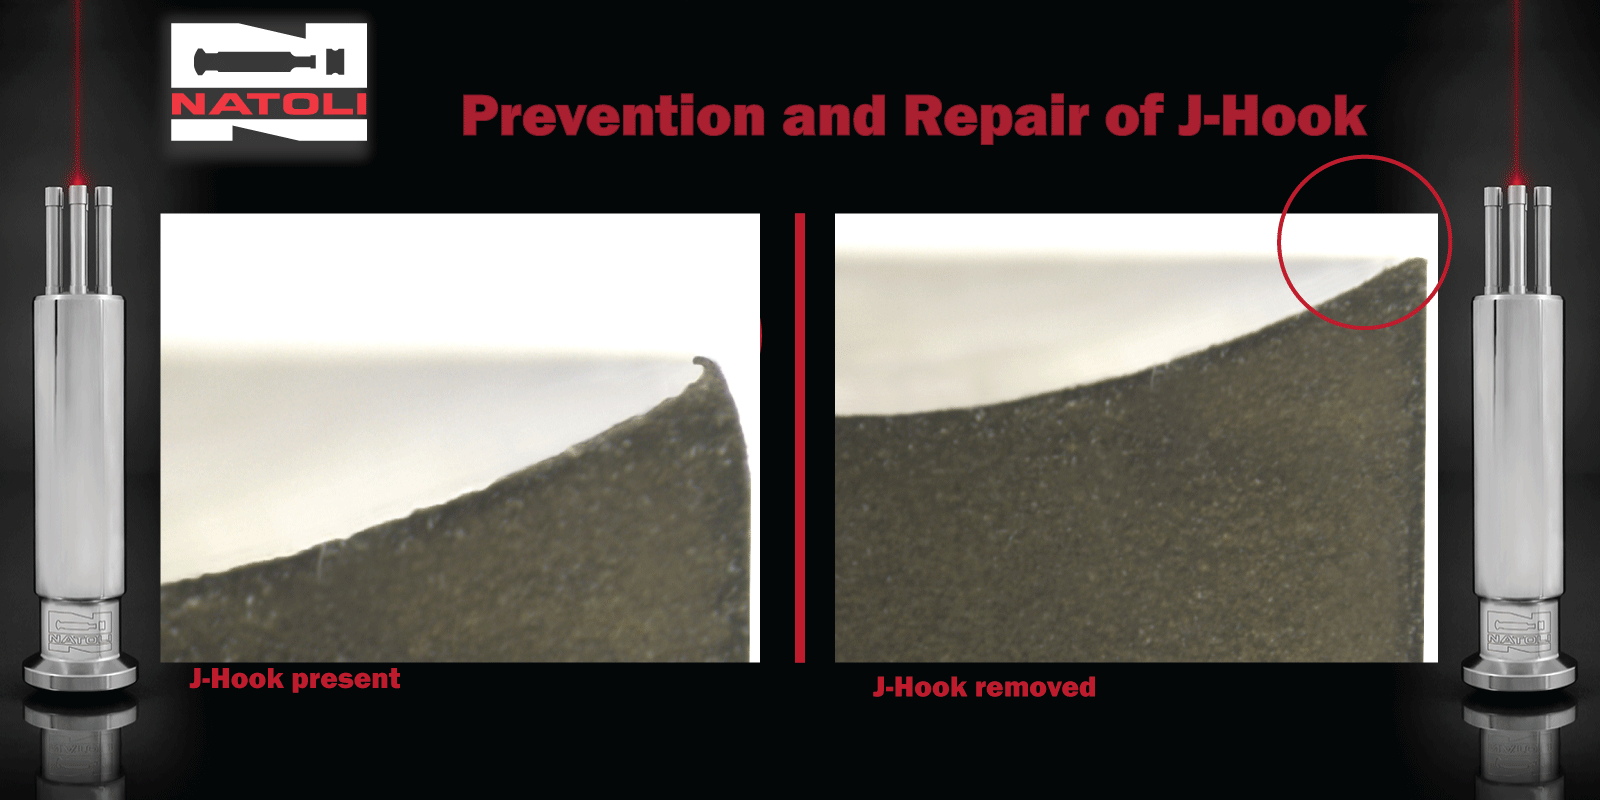 Prevention and Repair of J-Hook